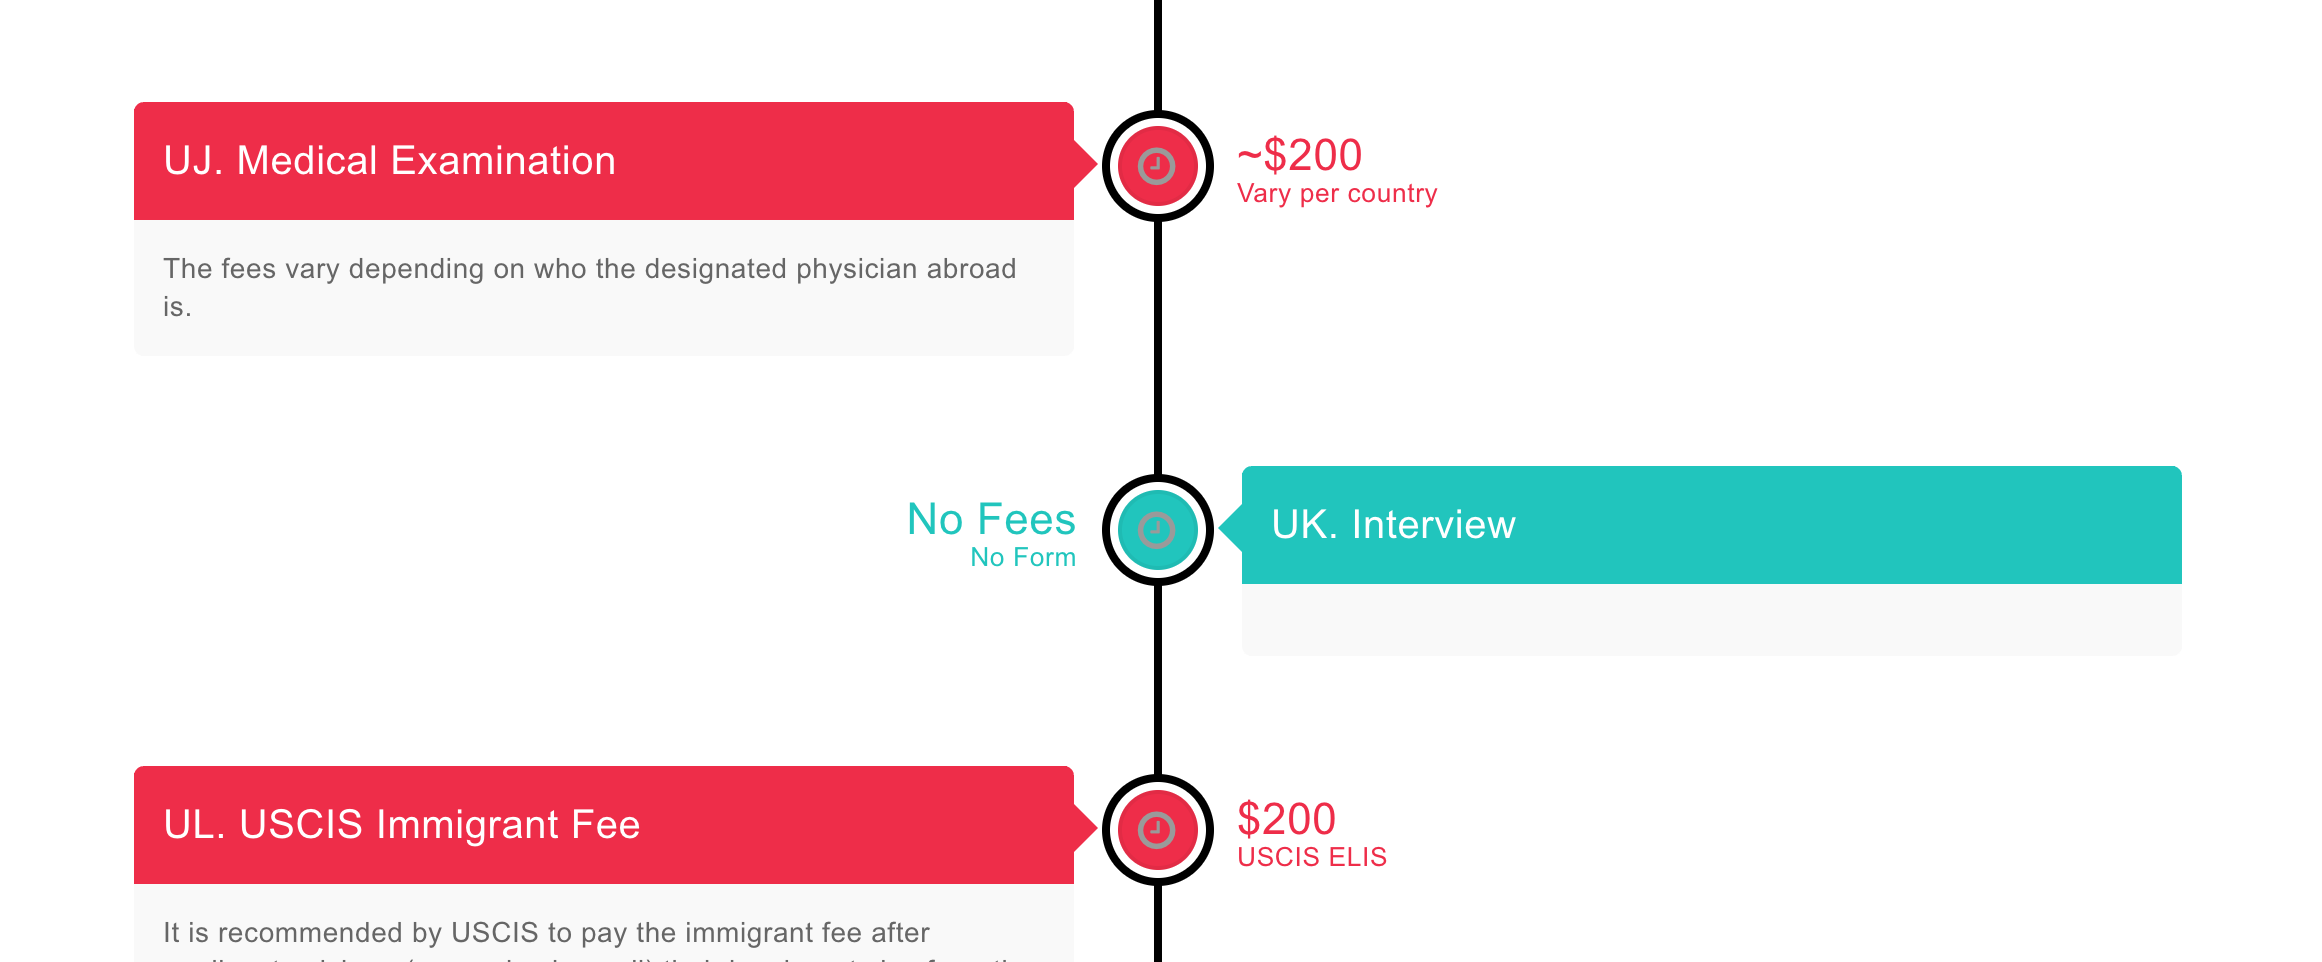 Green Card fees vary per country